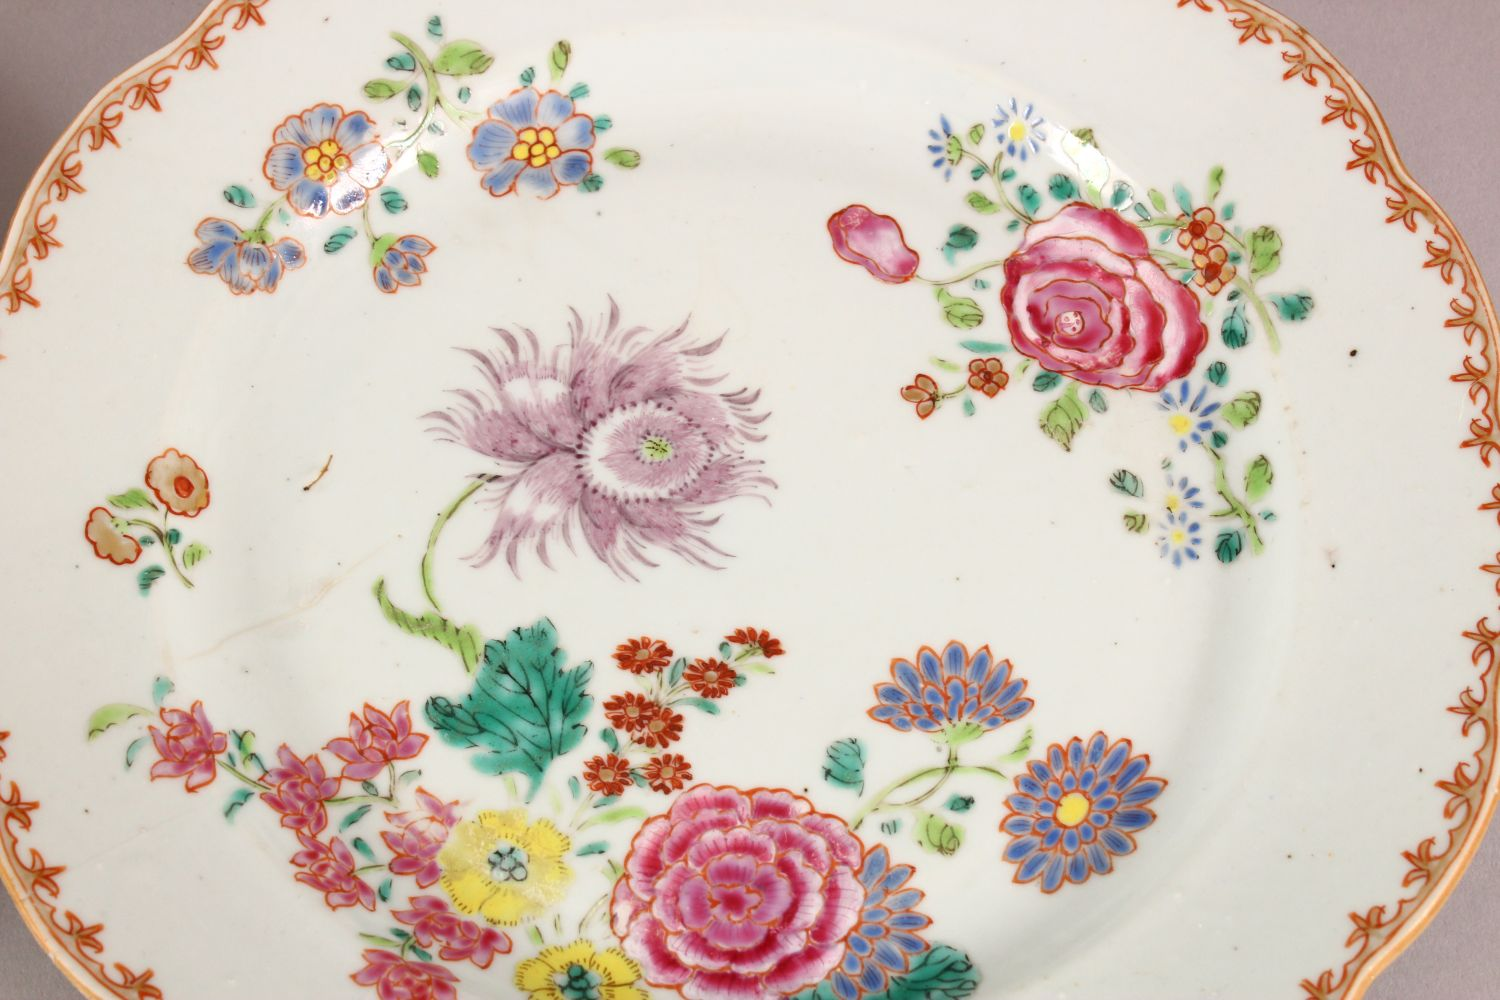 A SET OF FOUR 18TH / 19TH CENTURY CHINESE FAMILLE ROSE PLATES, with floral decoration, 23cm - Image 3 of 6